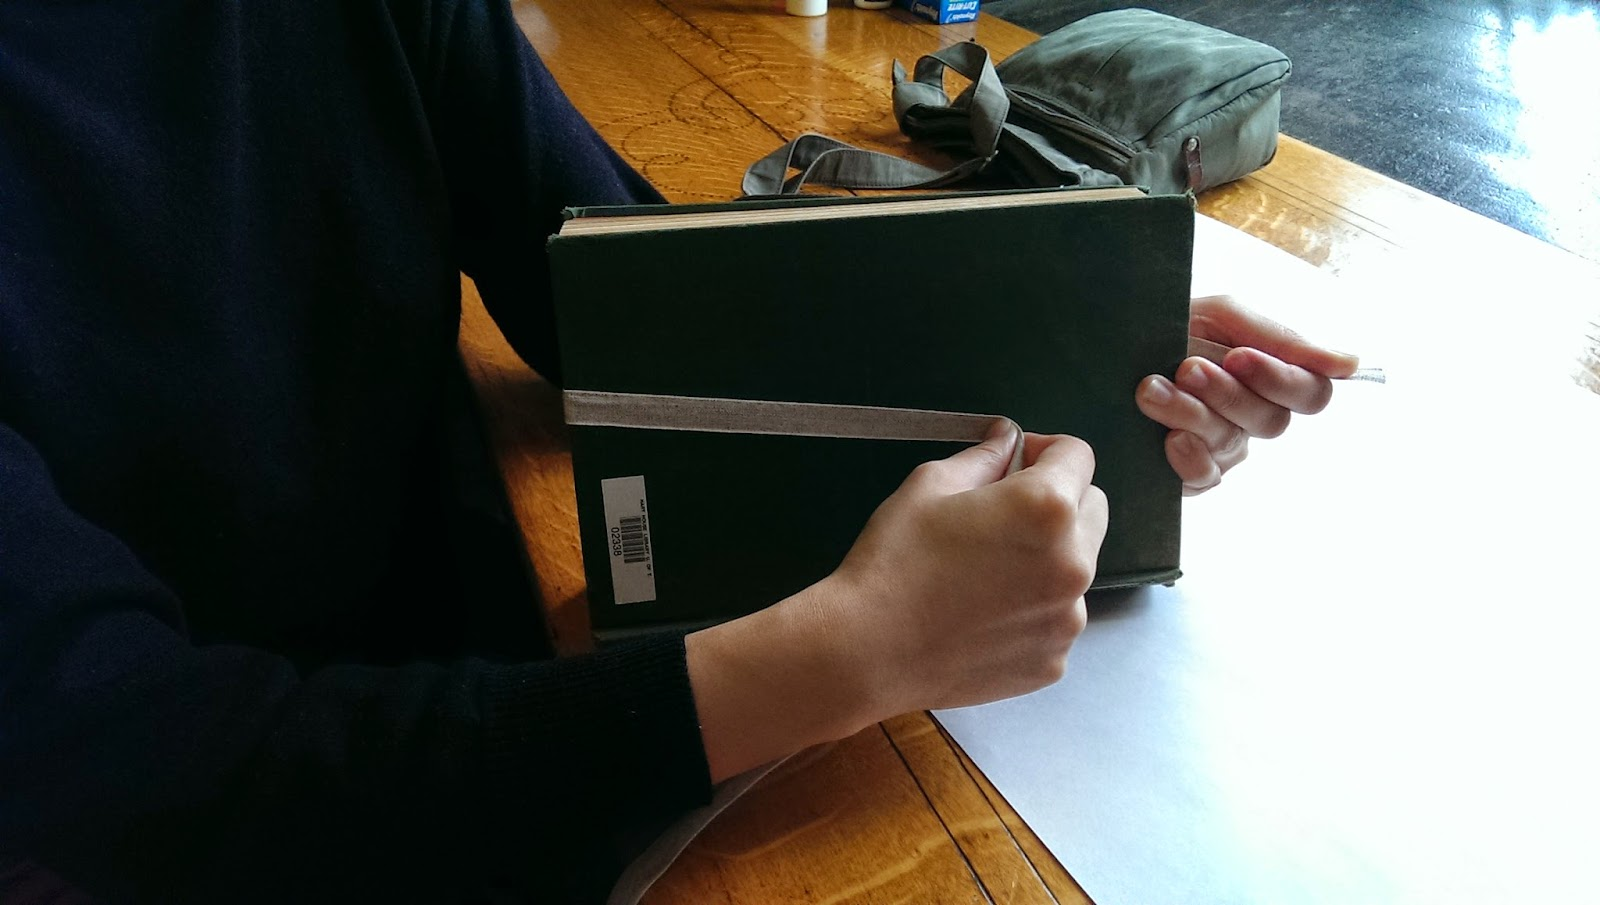 A girl in a long-sleeved blue shirt ties a length of archival tape around an old book to stabilize it